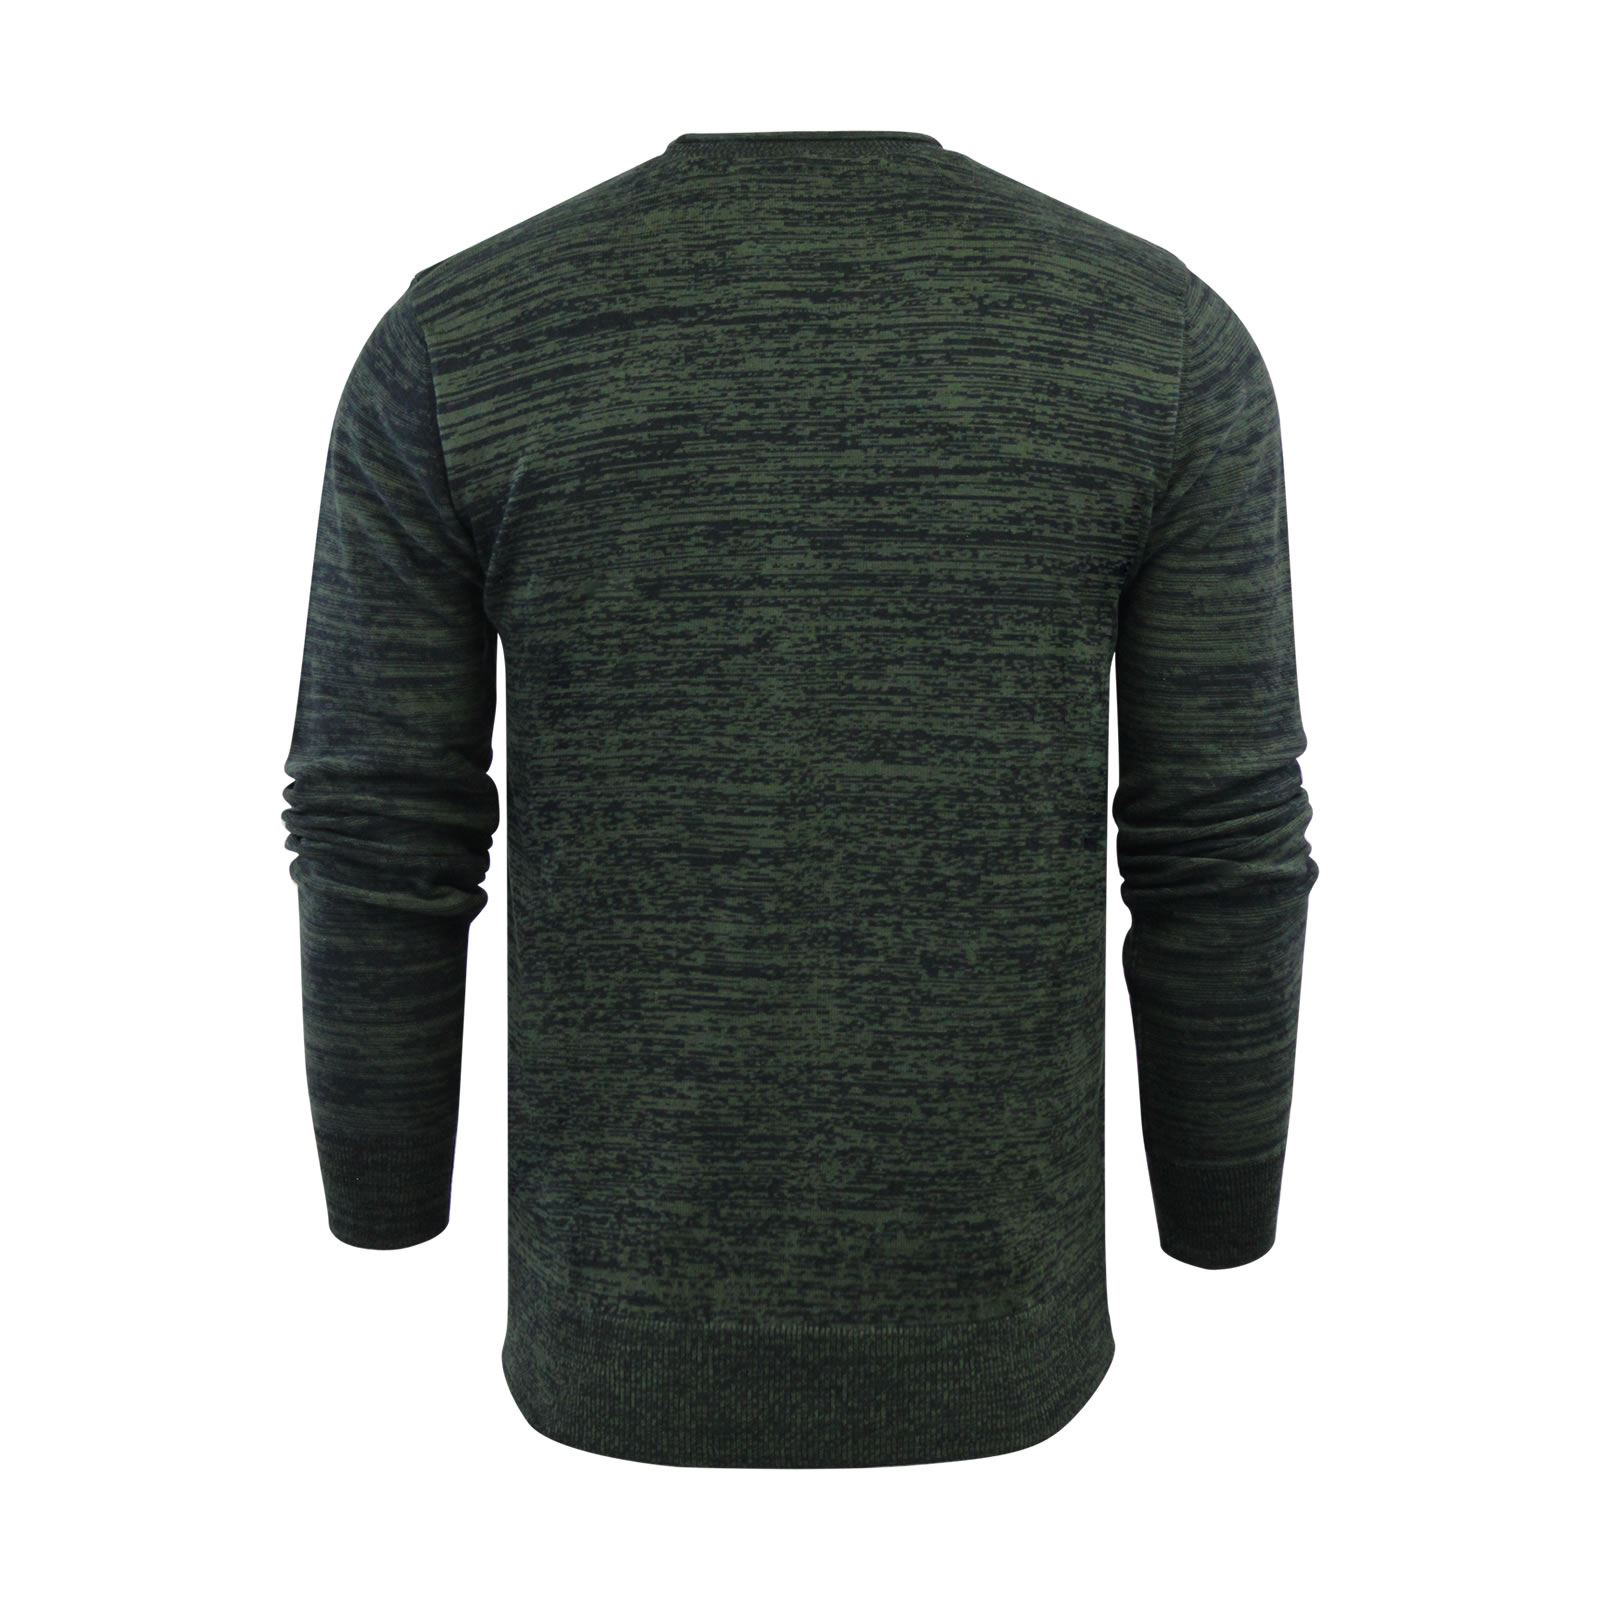 Mens-Jumper-Brave-Soul-Knitted-Sweater-In-Various-Styles thumbnail 11